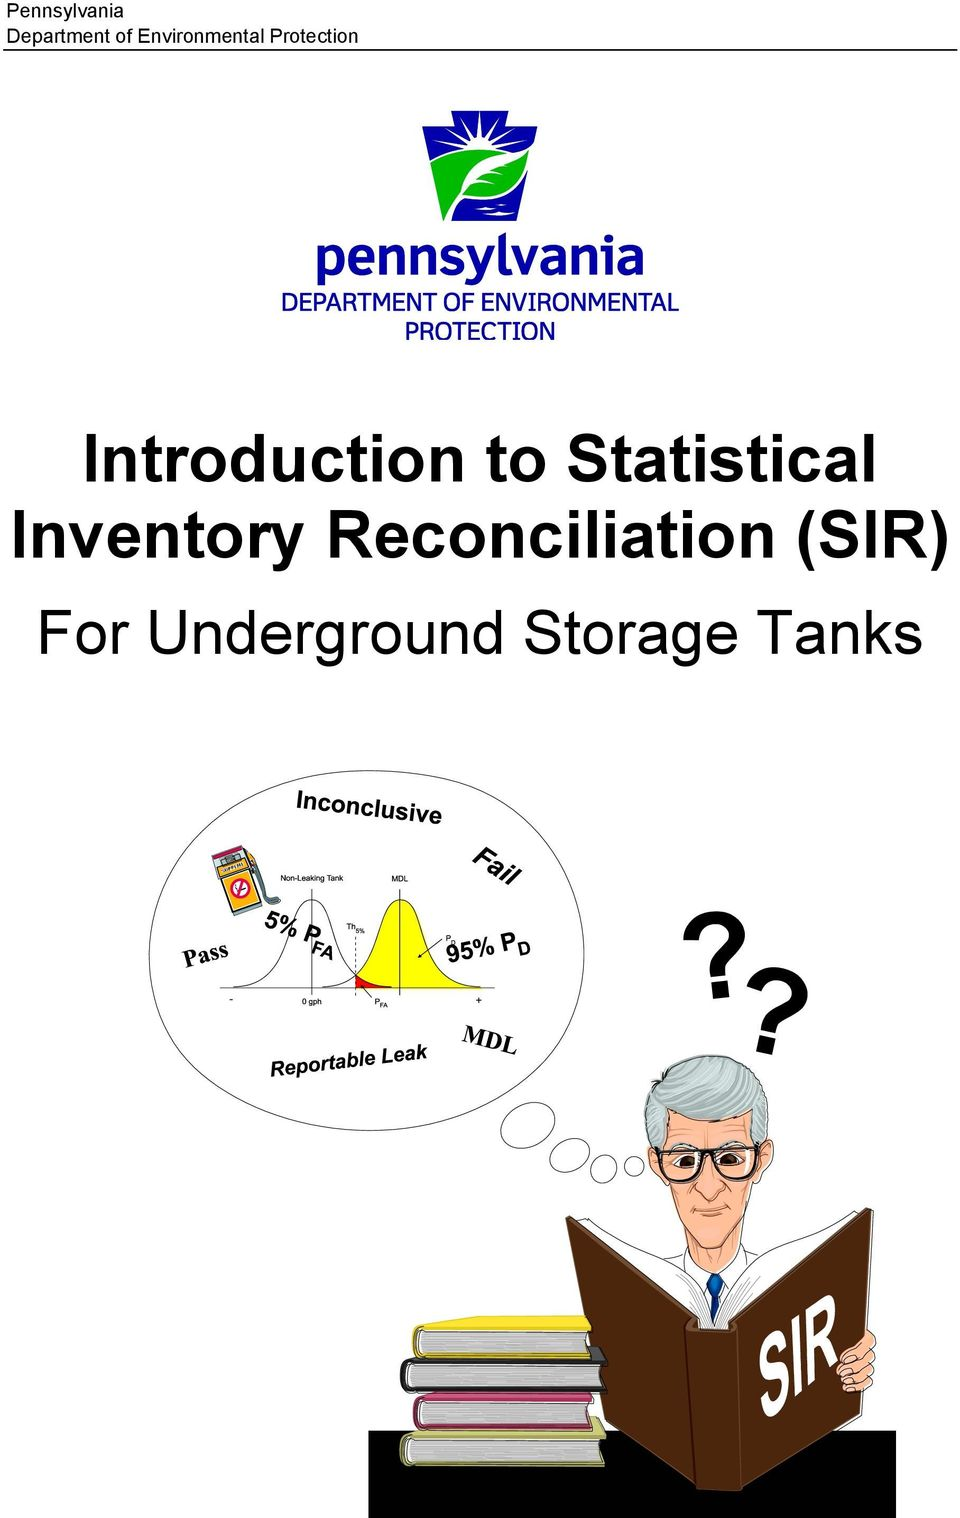 Introduction to Statistical